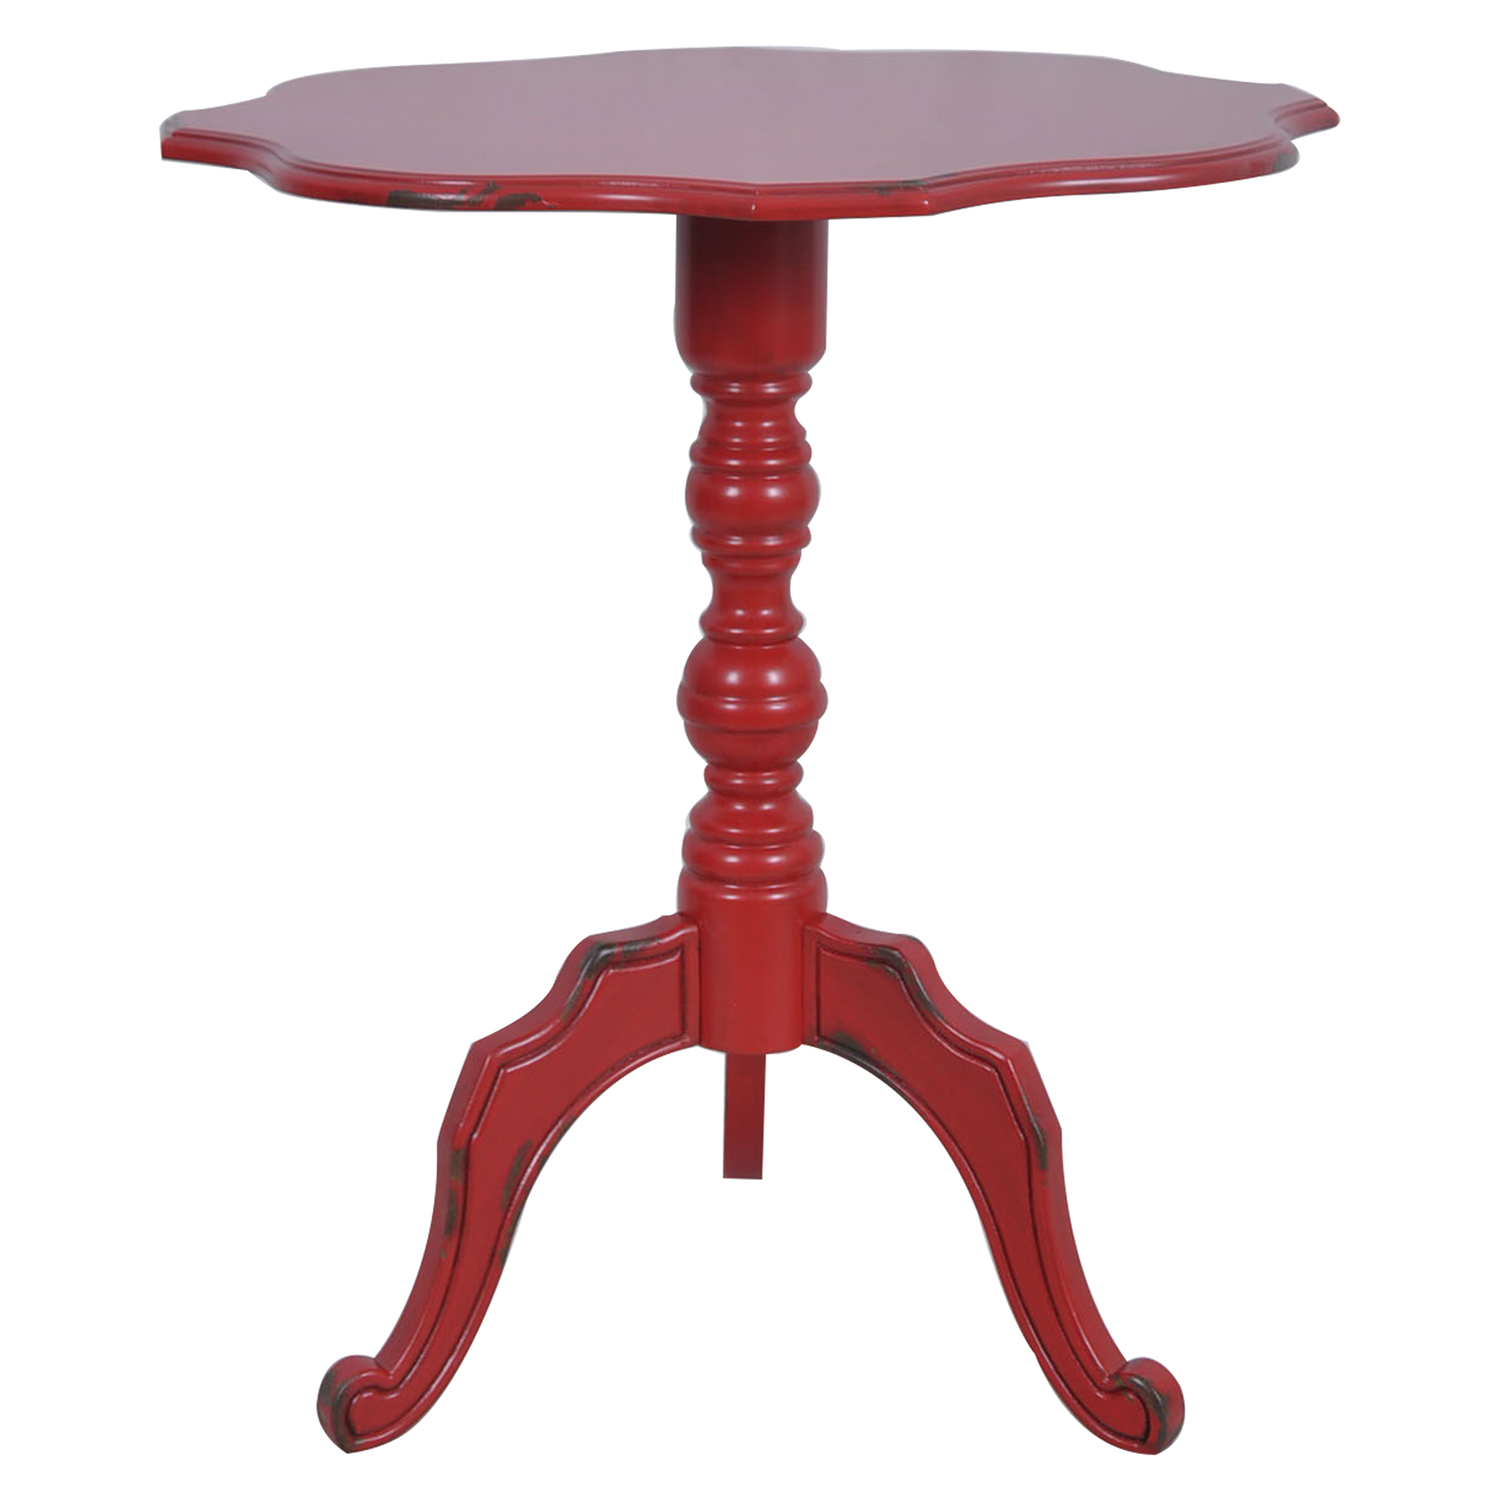 evan red accent table tables colors mosaic venetian antique furniture simplify oval marble dinner set kitchen dining target wicker chairs distressed coffee and end tile transition